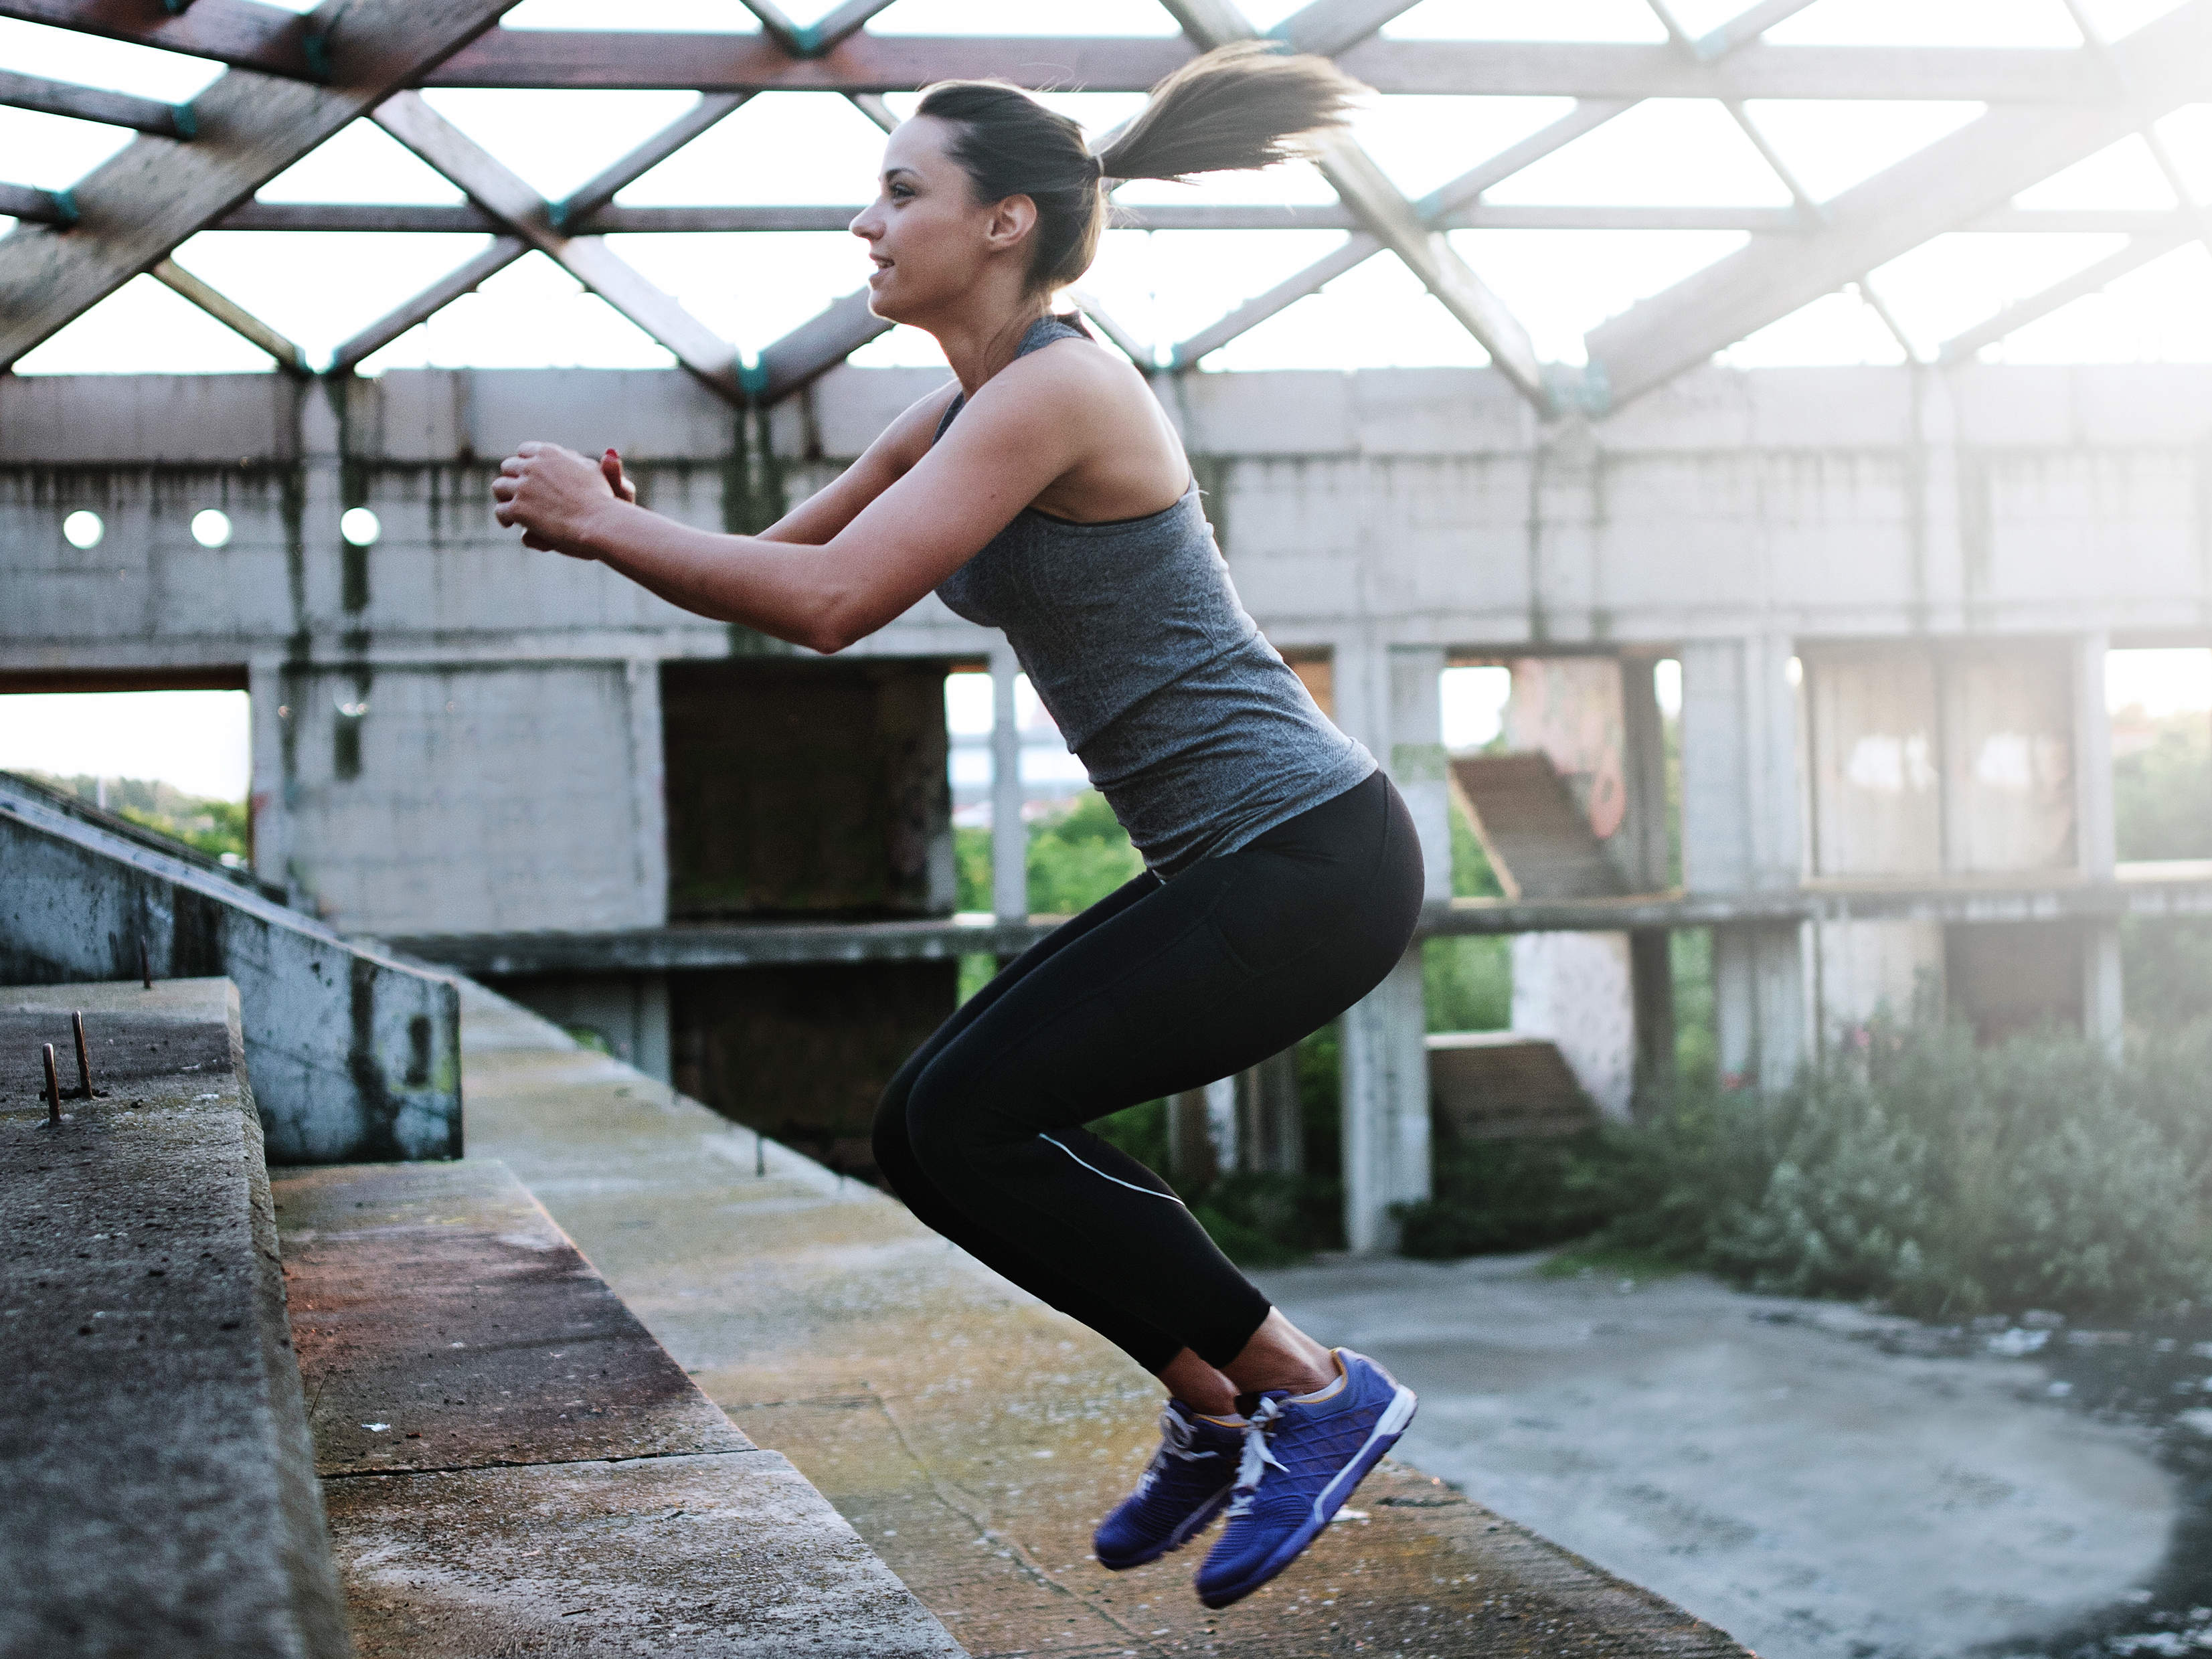 Plyometric: to enhance upper body strength